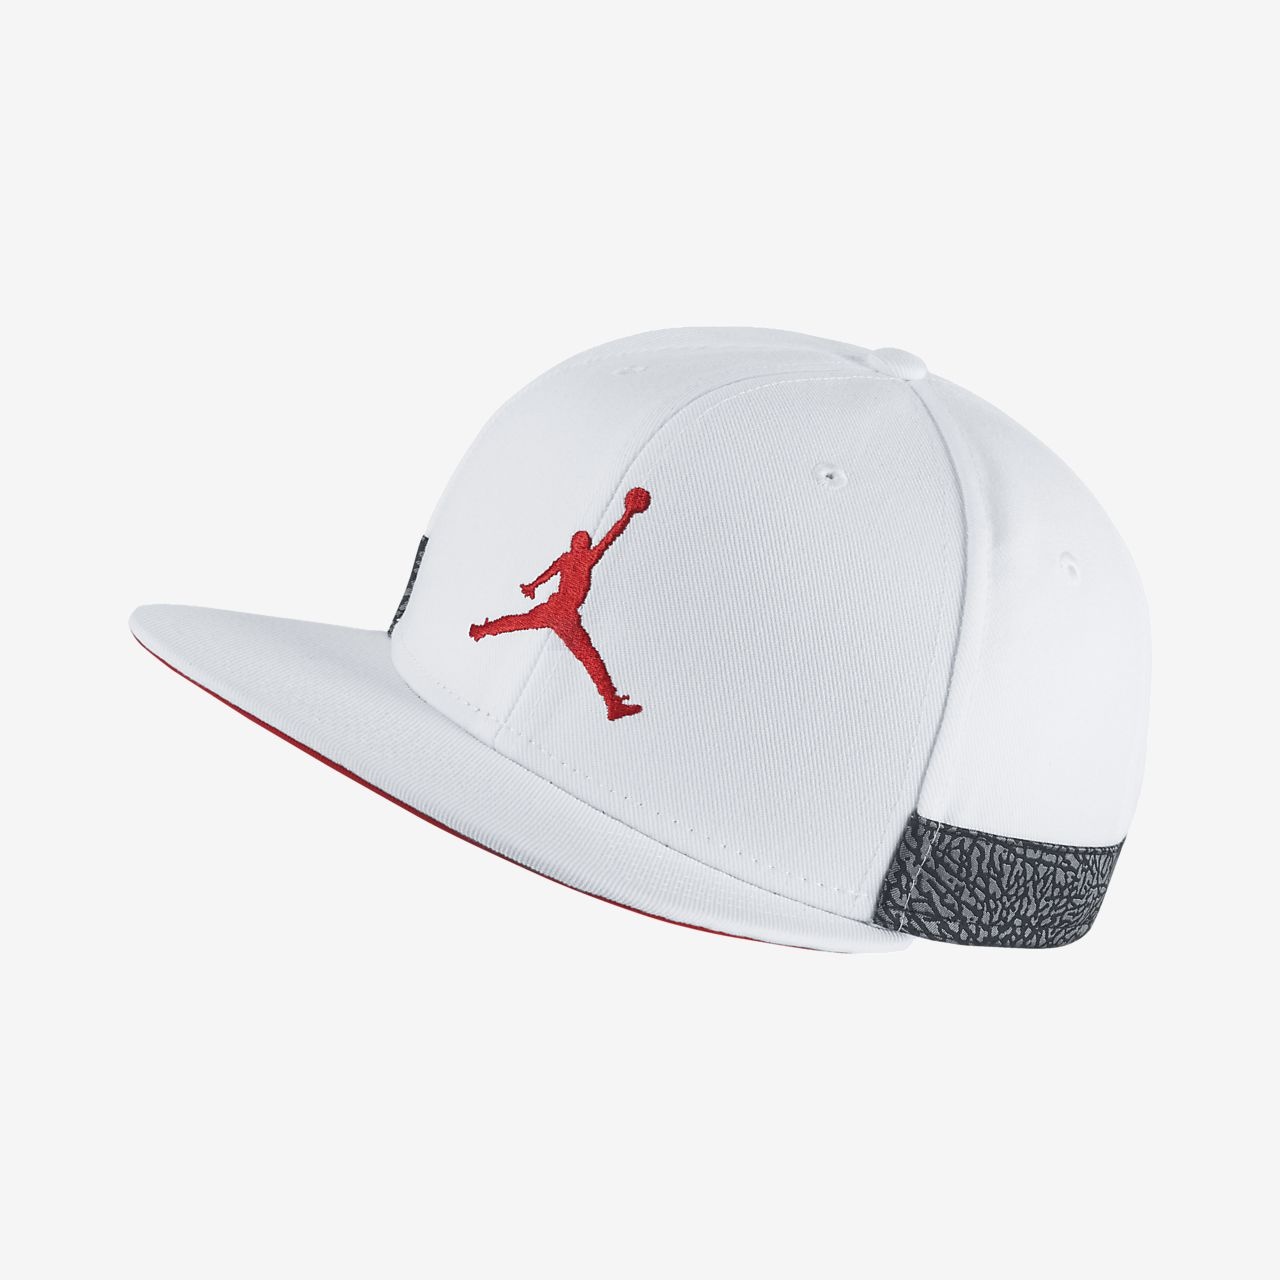 6db19a6c3 low cost jordan jumpman cap india ucsf 041d9 e8179